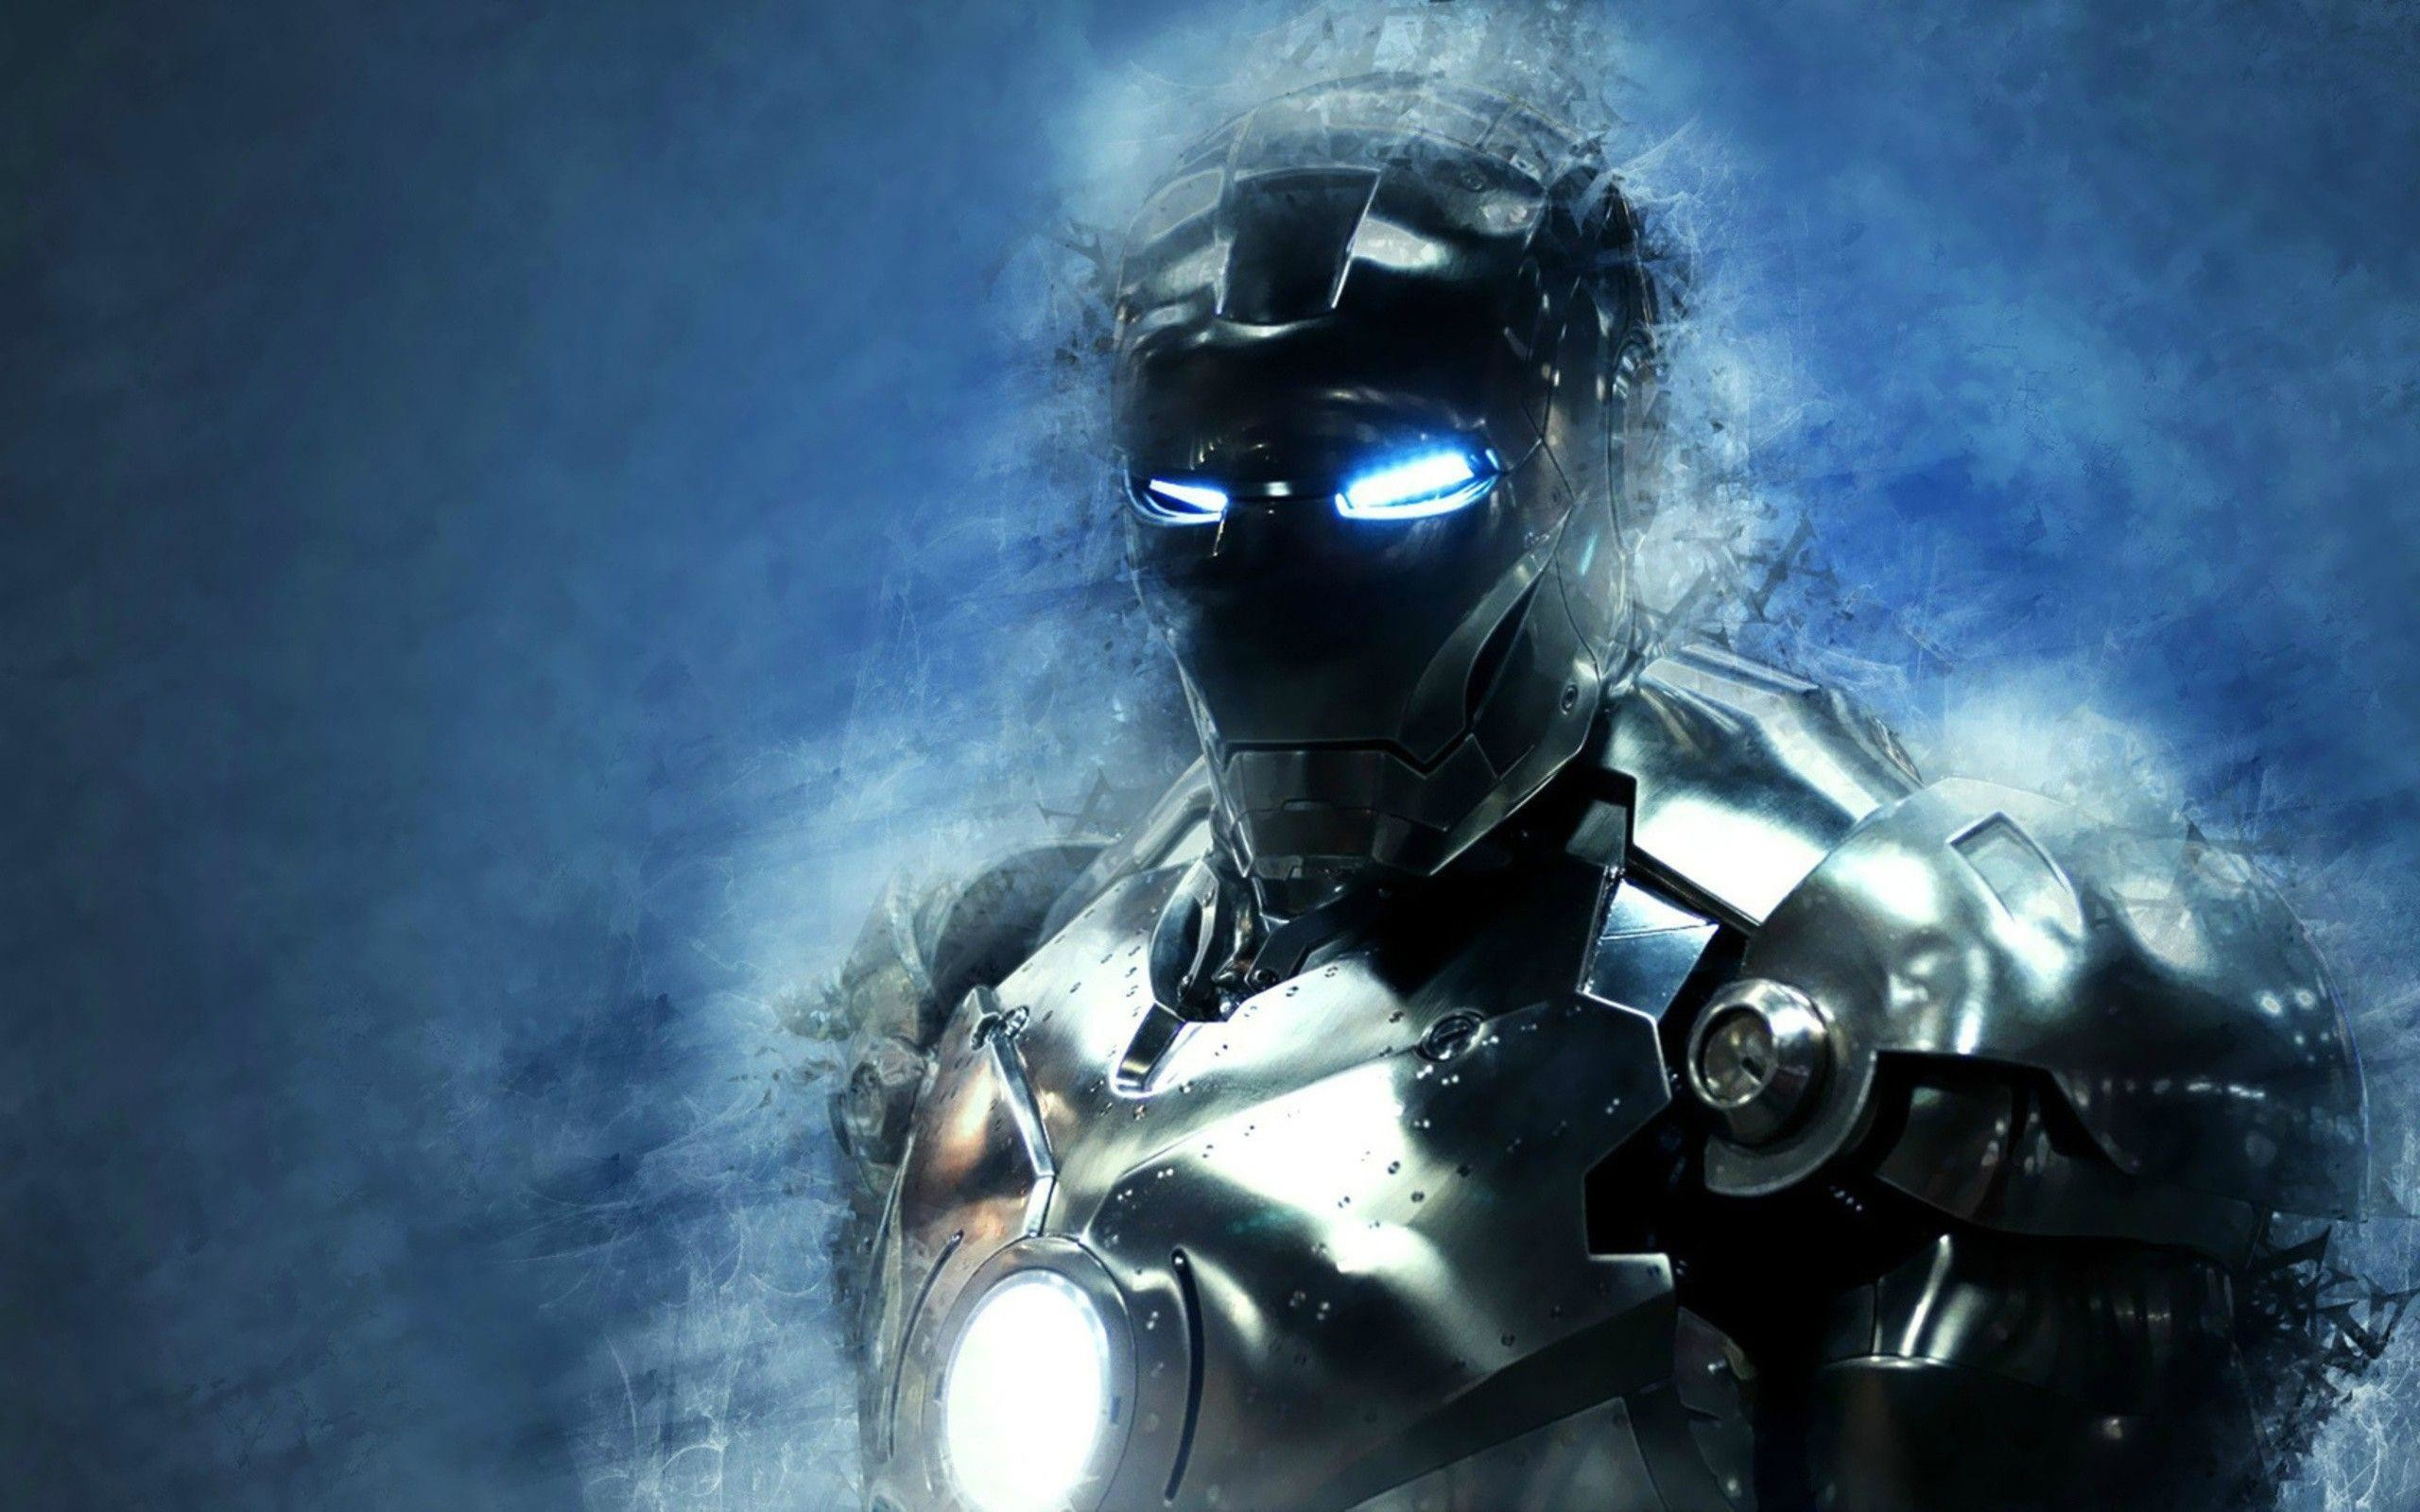 2560x1600 Black Iron Man 3 HD Wallpaper - HD Wallpaper Collection - HD .